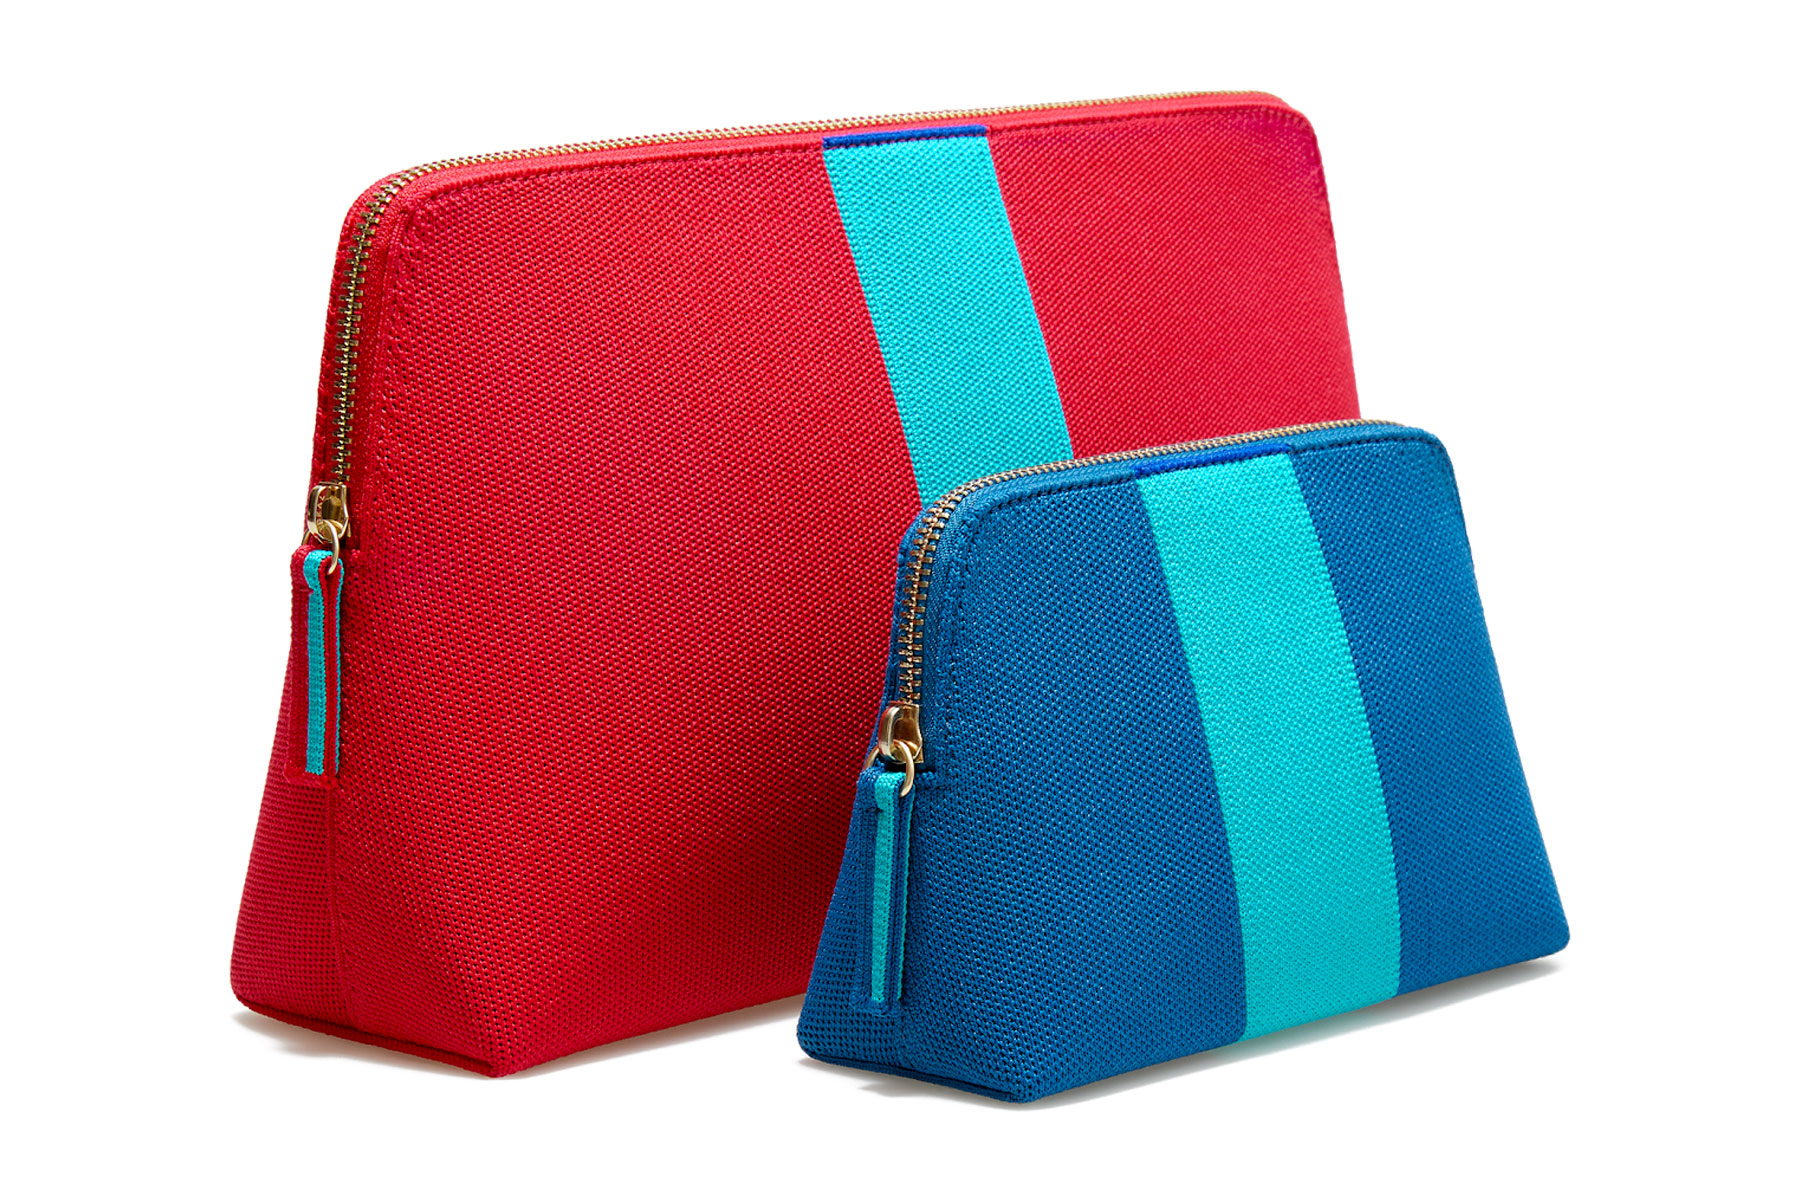 Pink and blue makeup bags